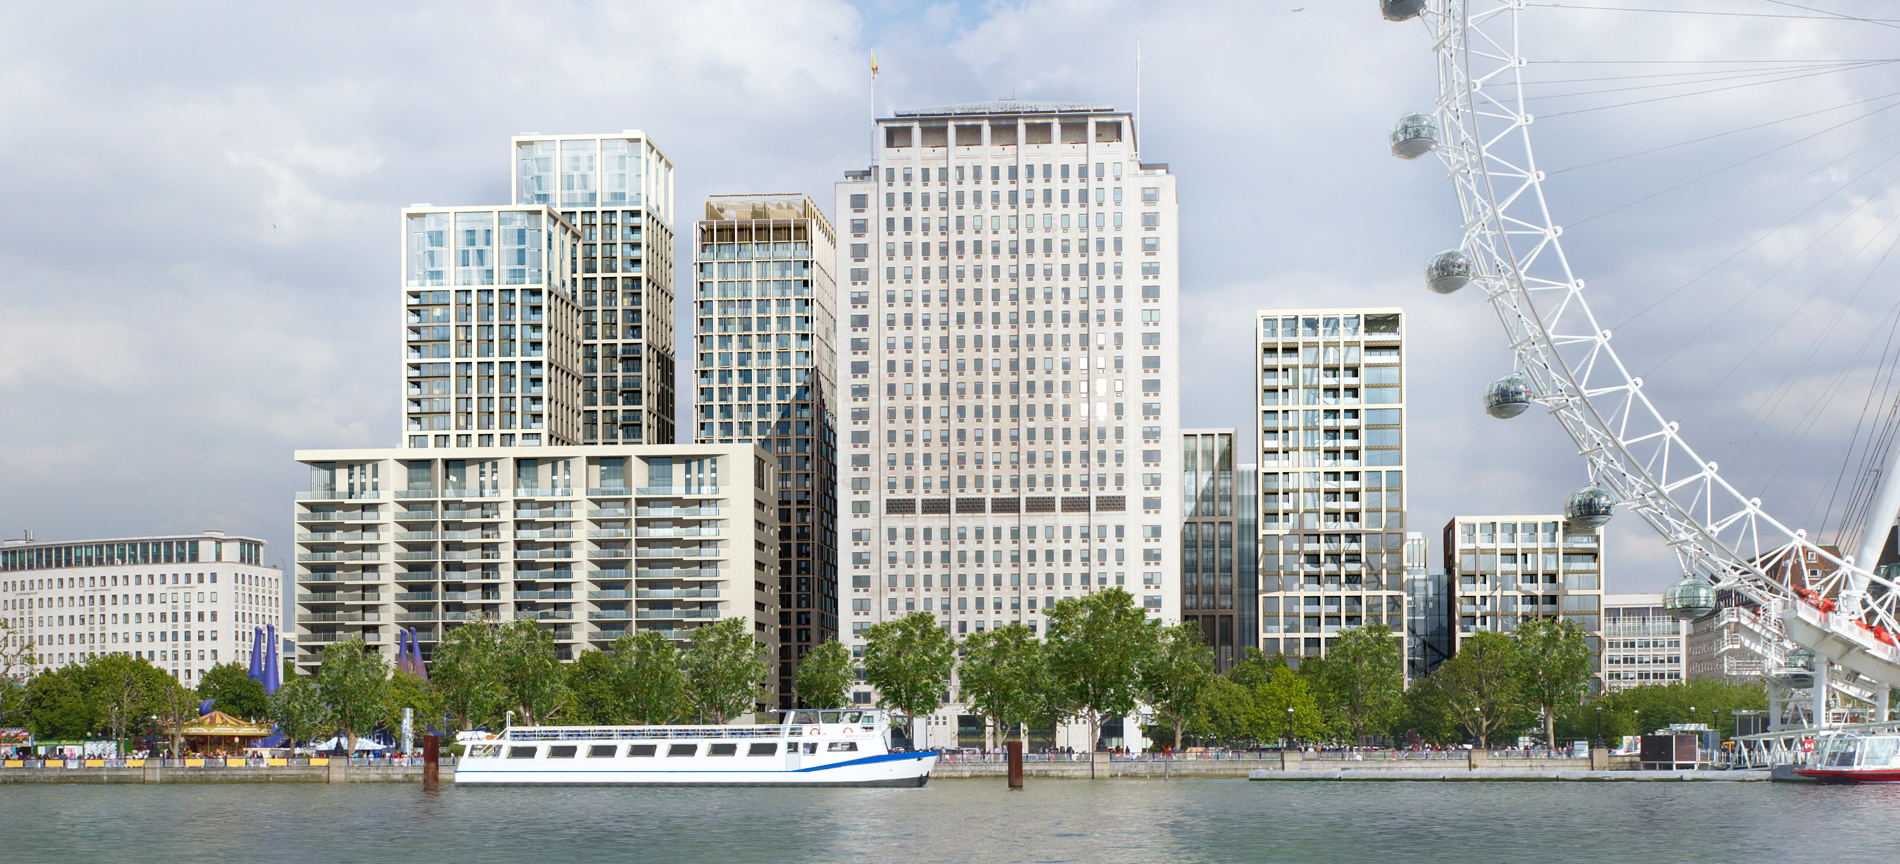 southbank place architects grid